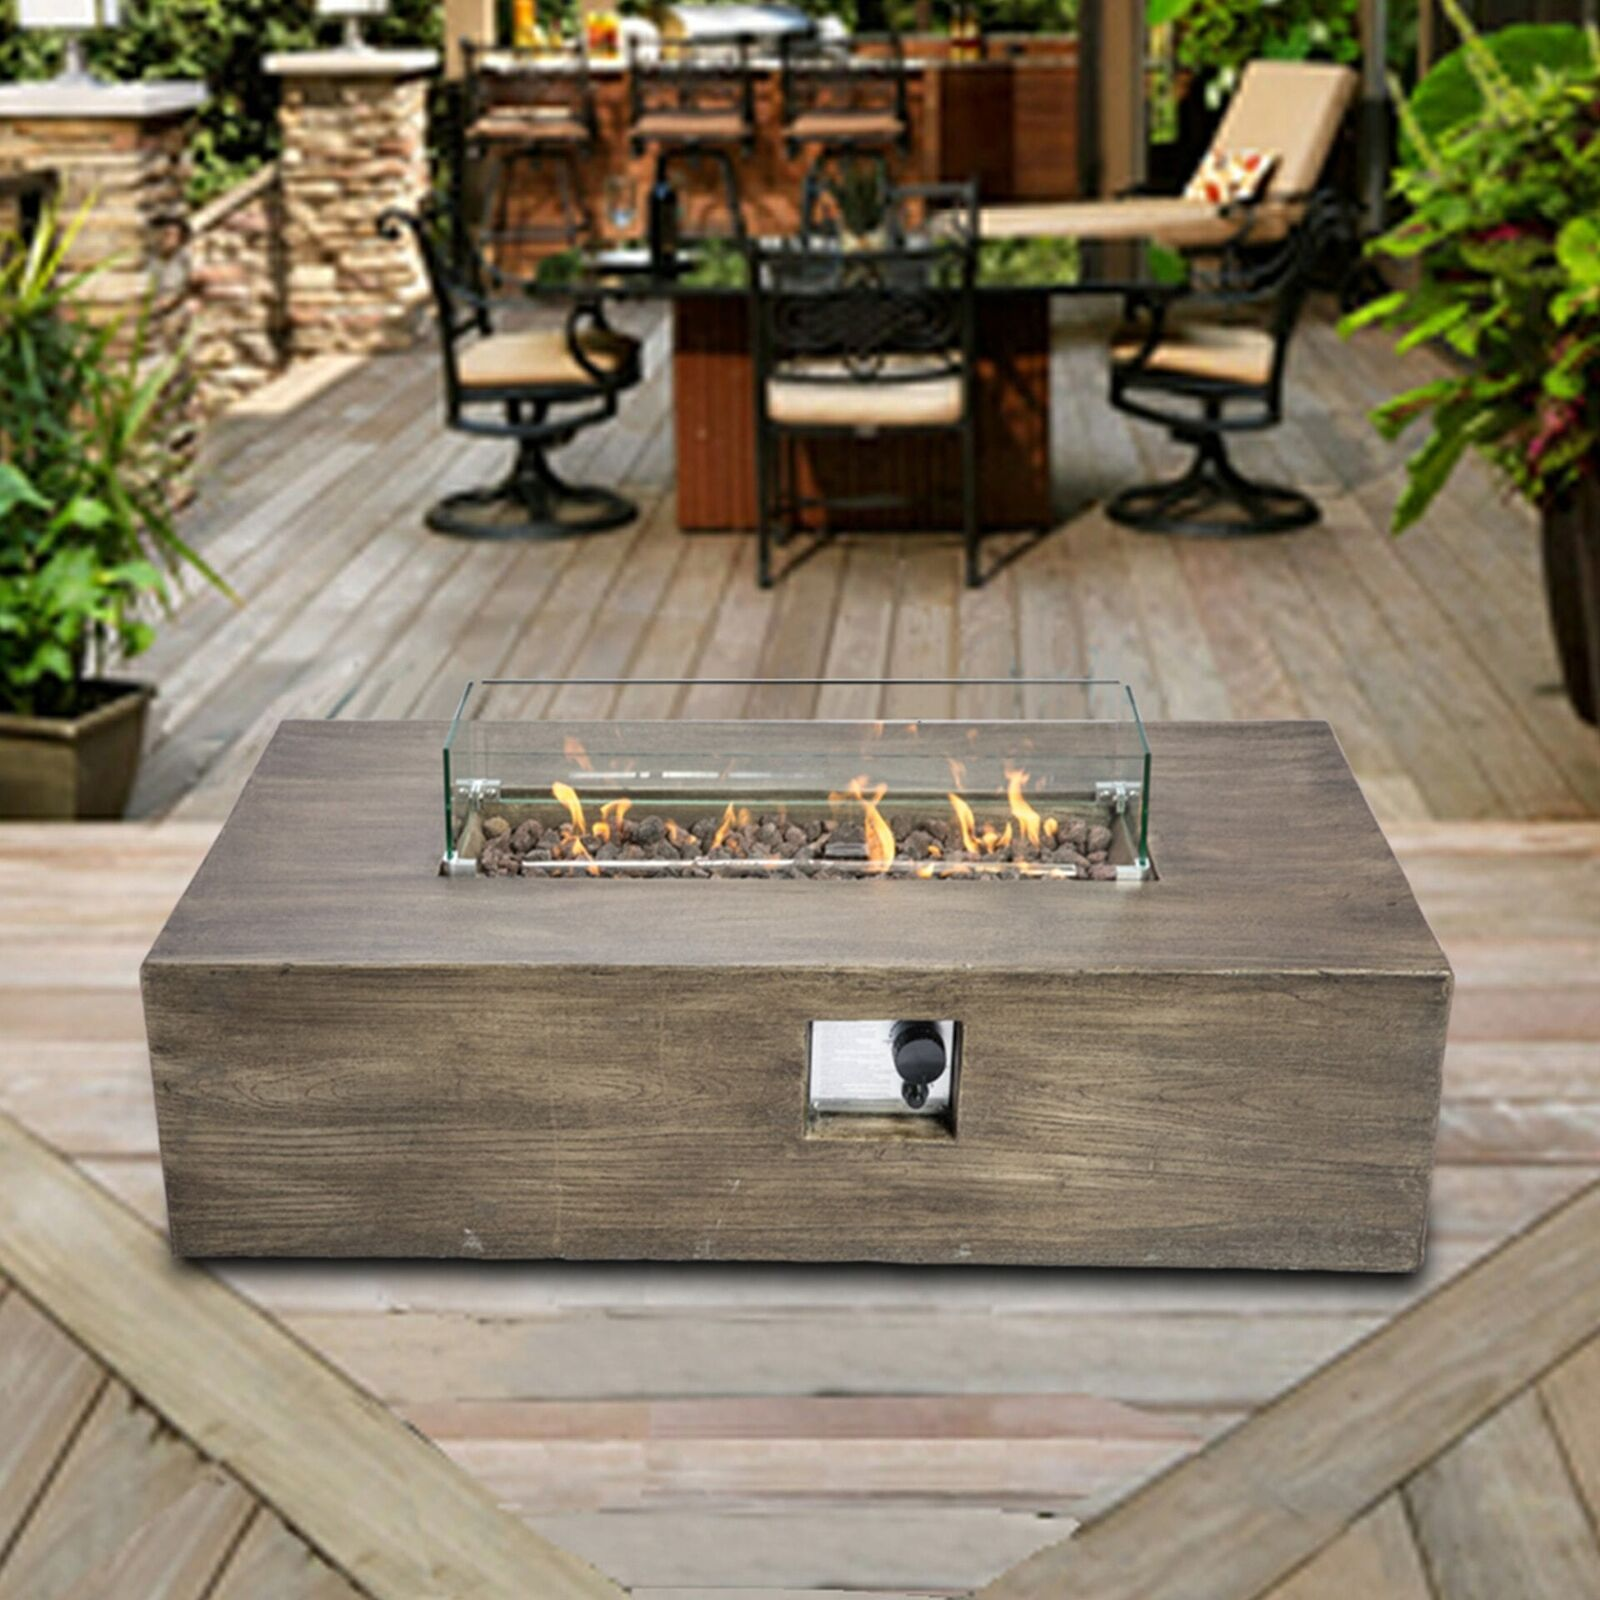 Peaktop Firepit Outdoor Gas Fire Pit Concrete Style, With Cover HF48708AA-UK